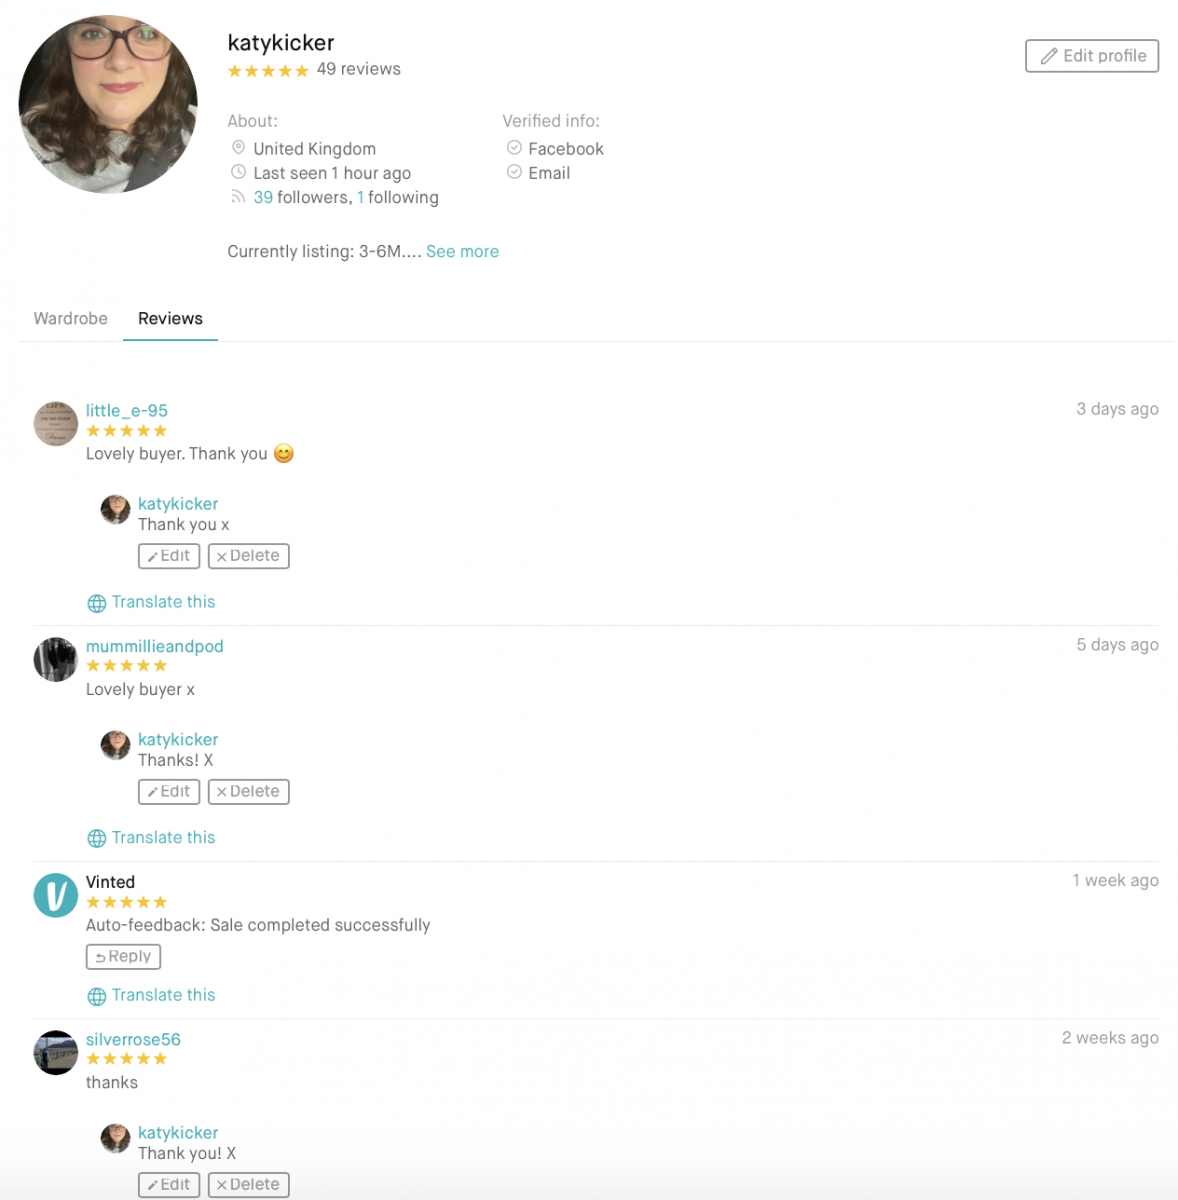 Feedback on a profile on the Vinted website